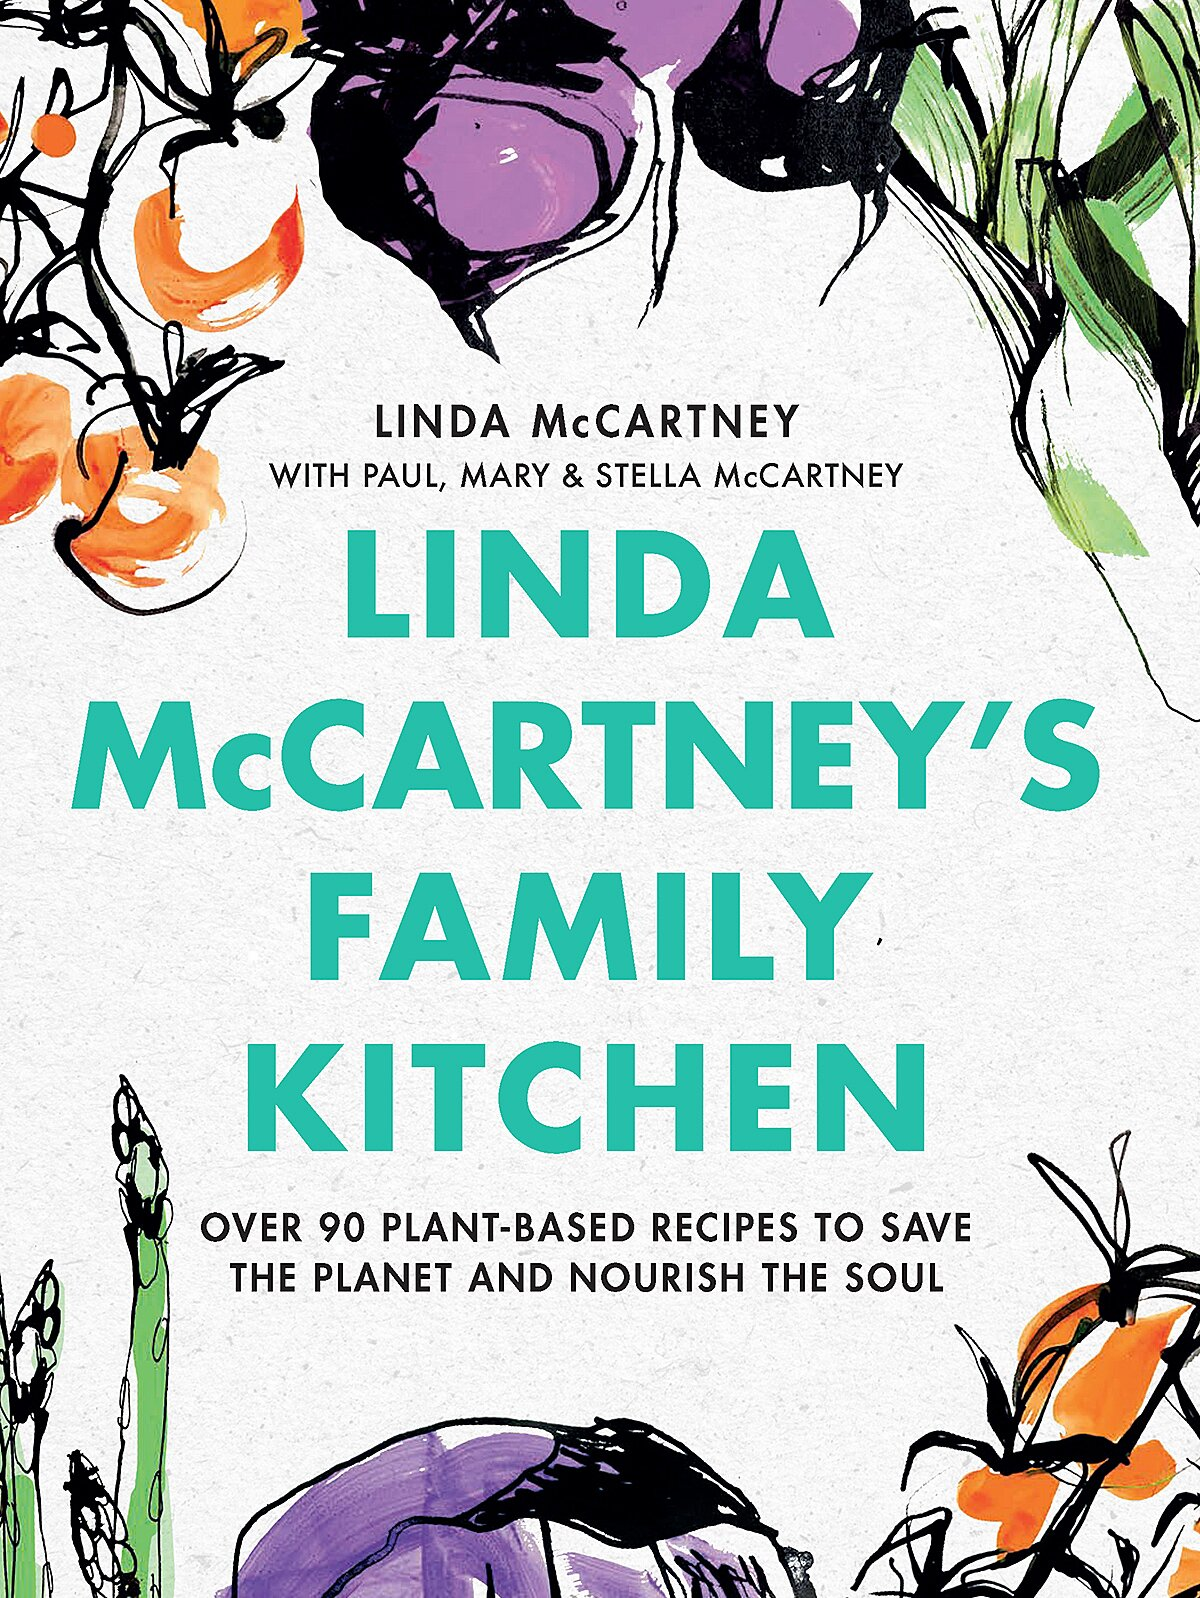 Sir Paul McCartney Releases Meat-Free Cookbook Celebrating Late Wife Linda